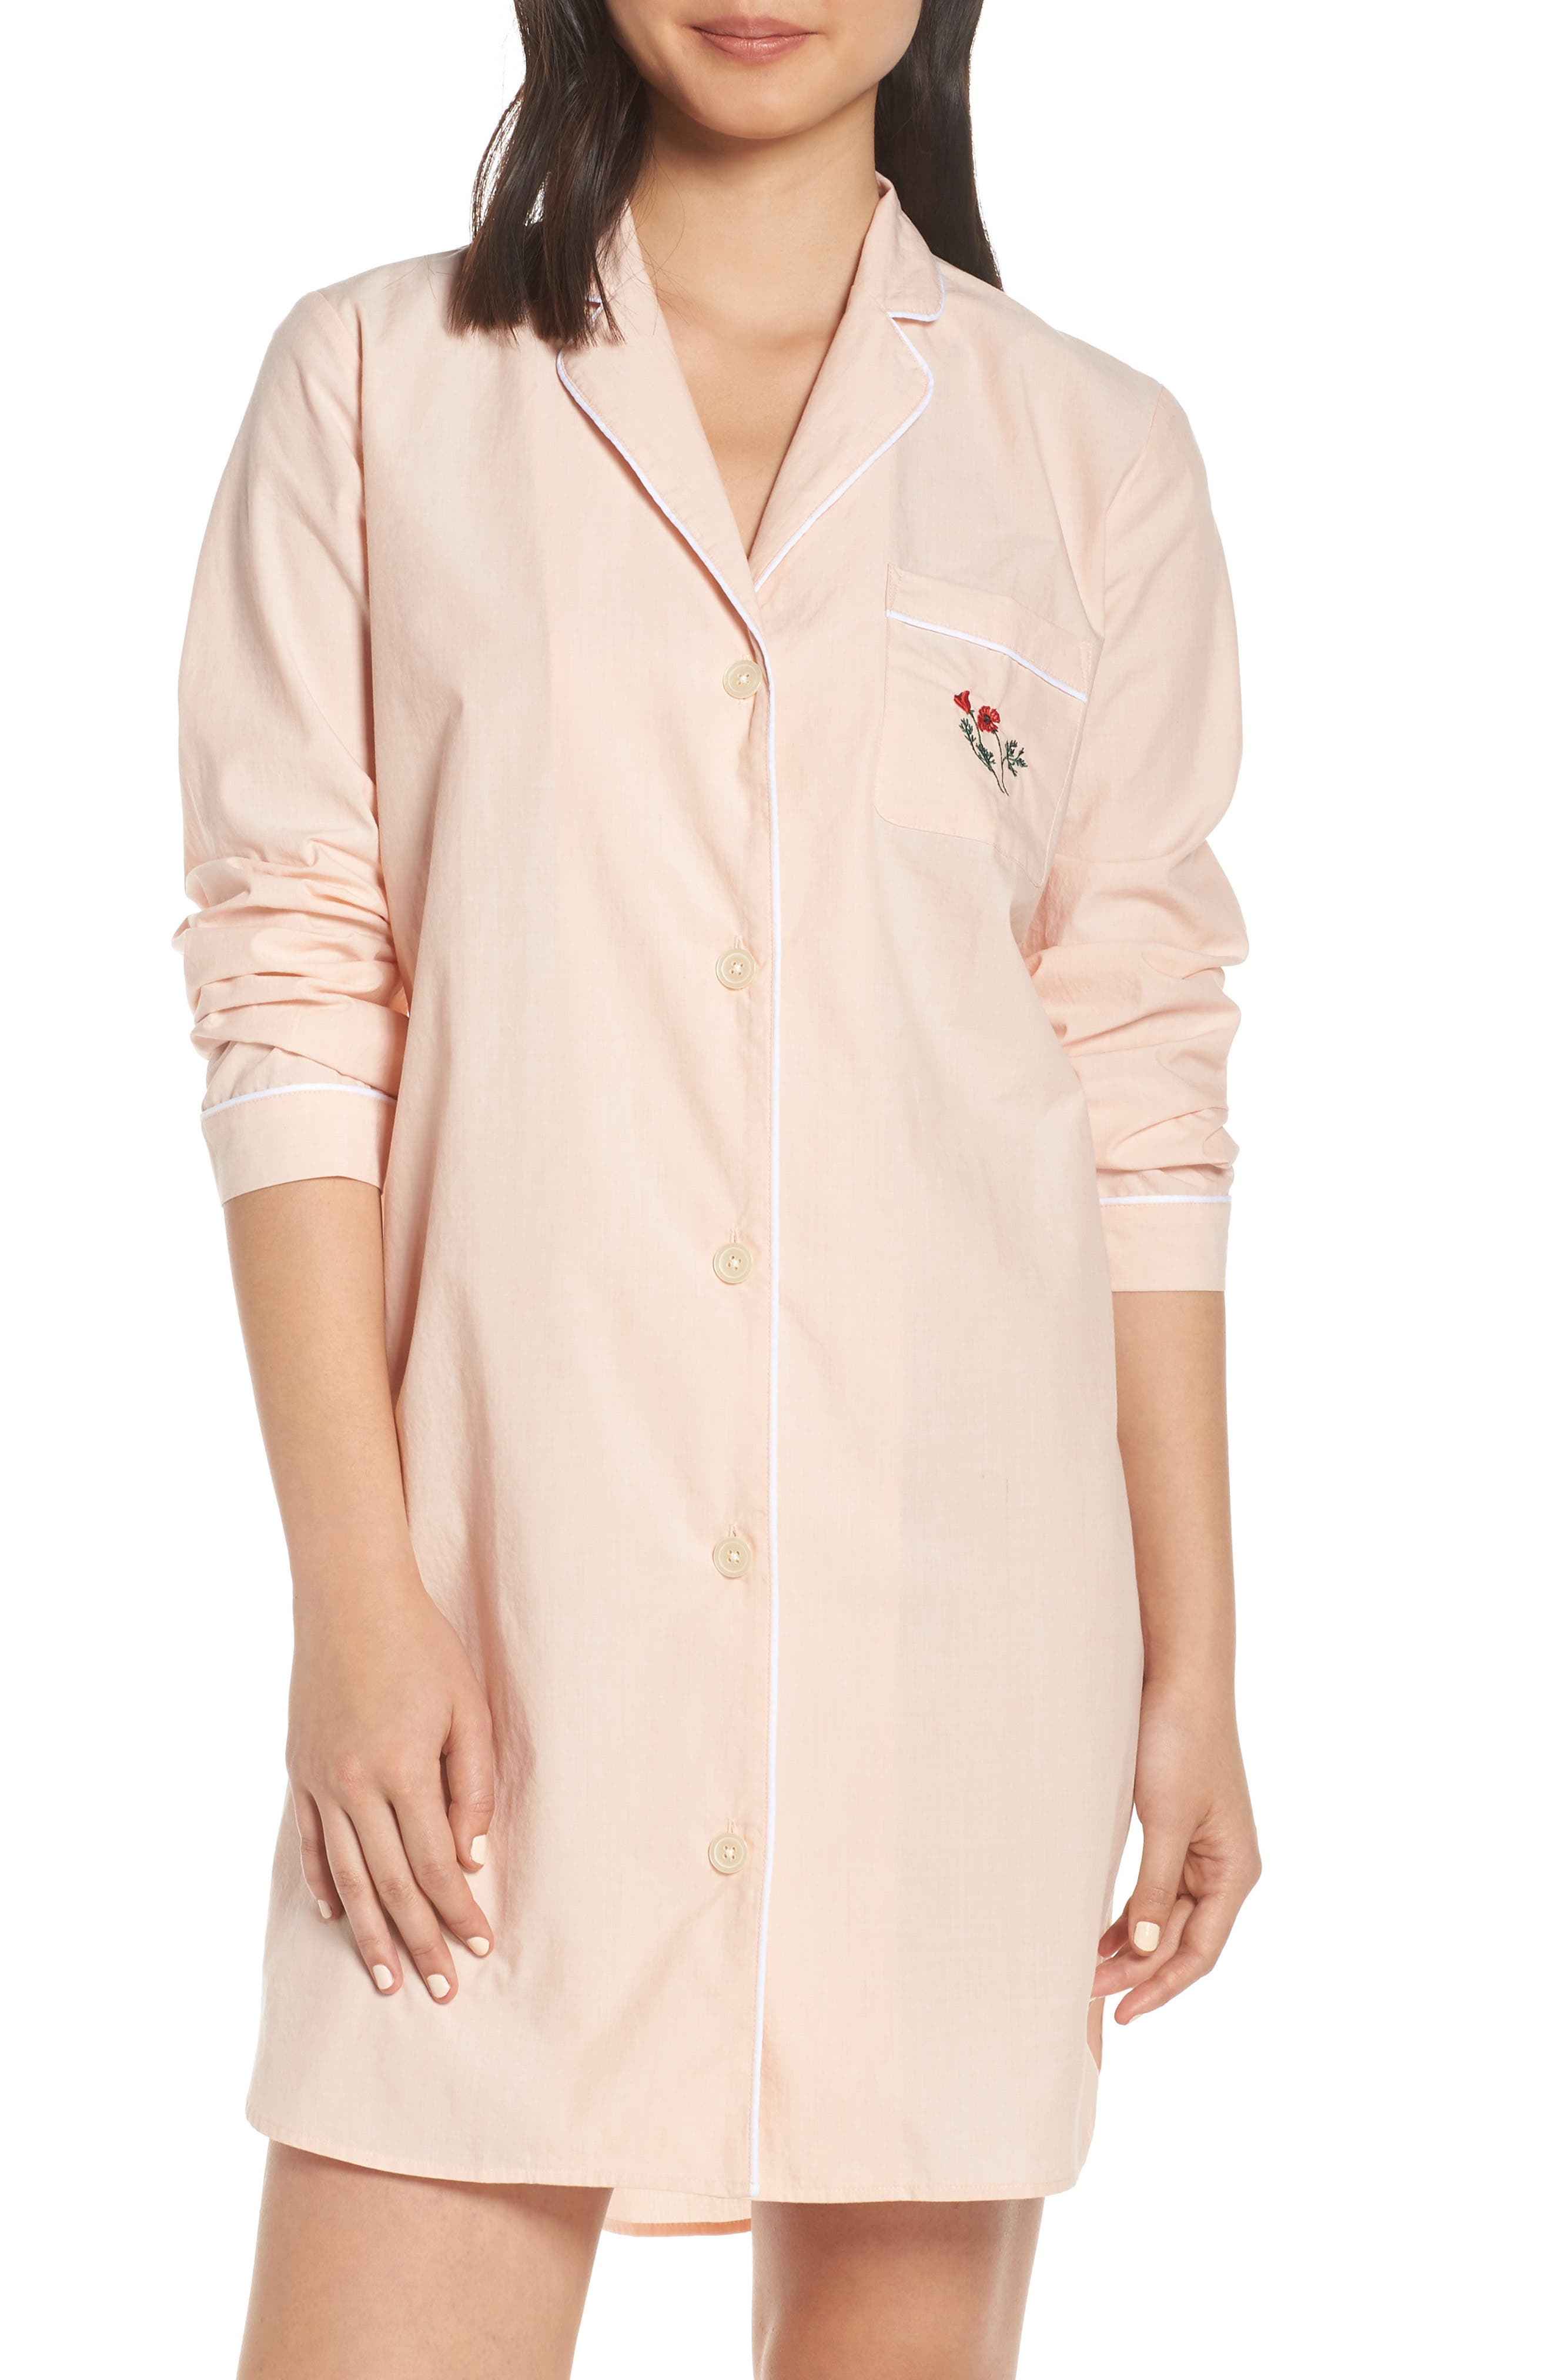 Madewell Poppy Embroidered Bedtime Nightshirt, Pink